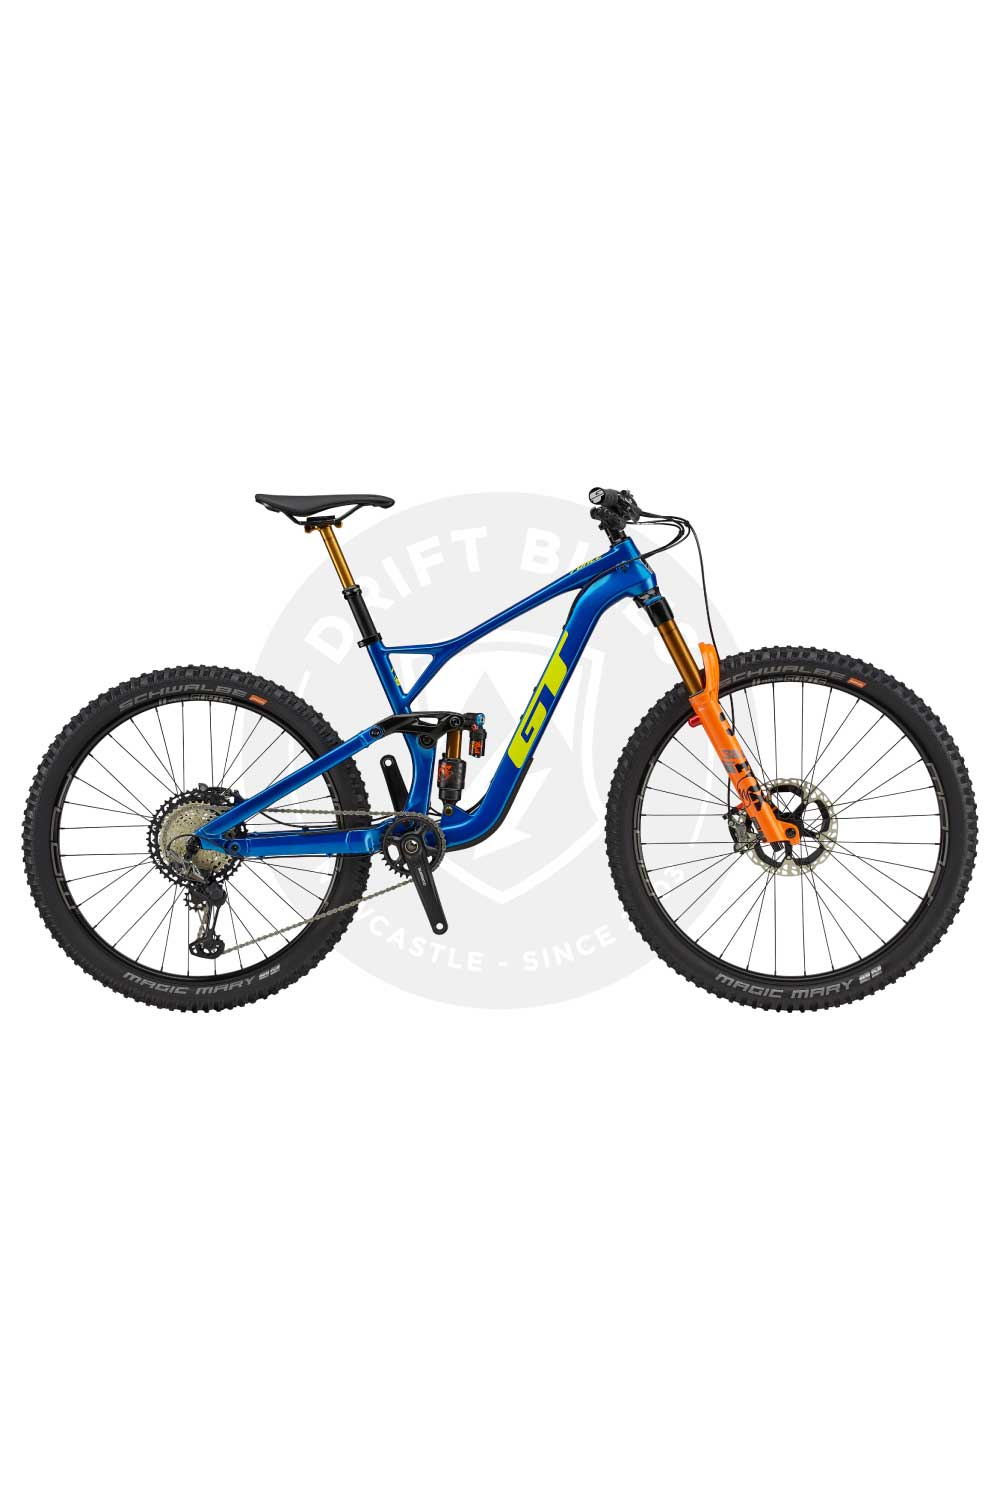 "GT Bicycles 2021 Force Carbon Team 29/27.5"" Mountain Bike"